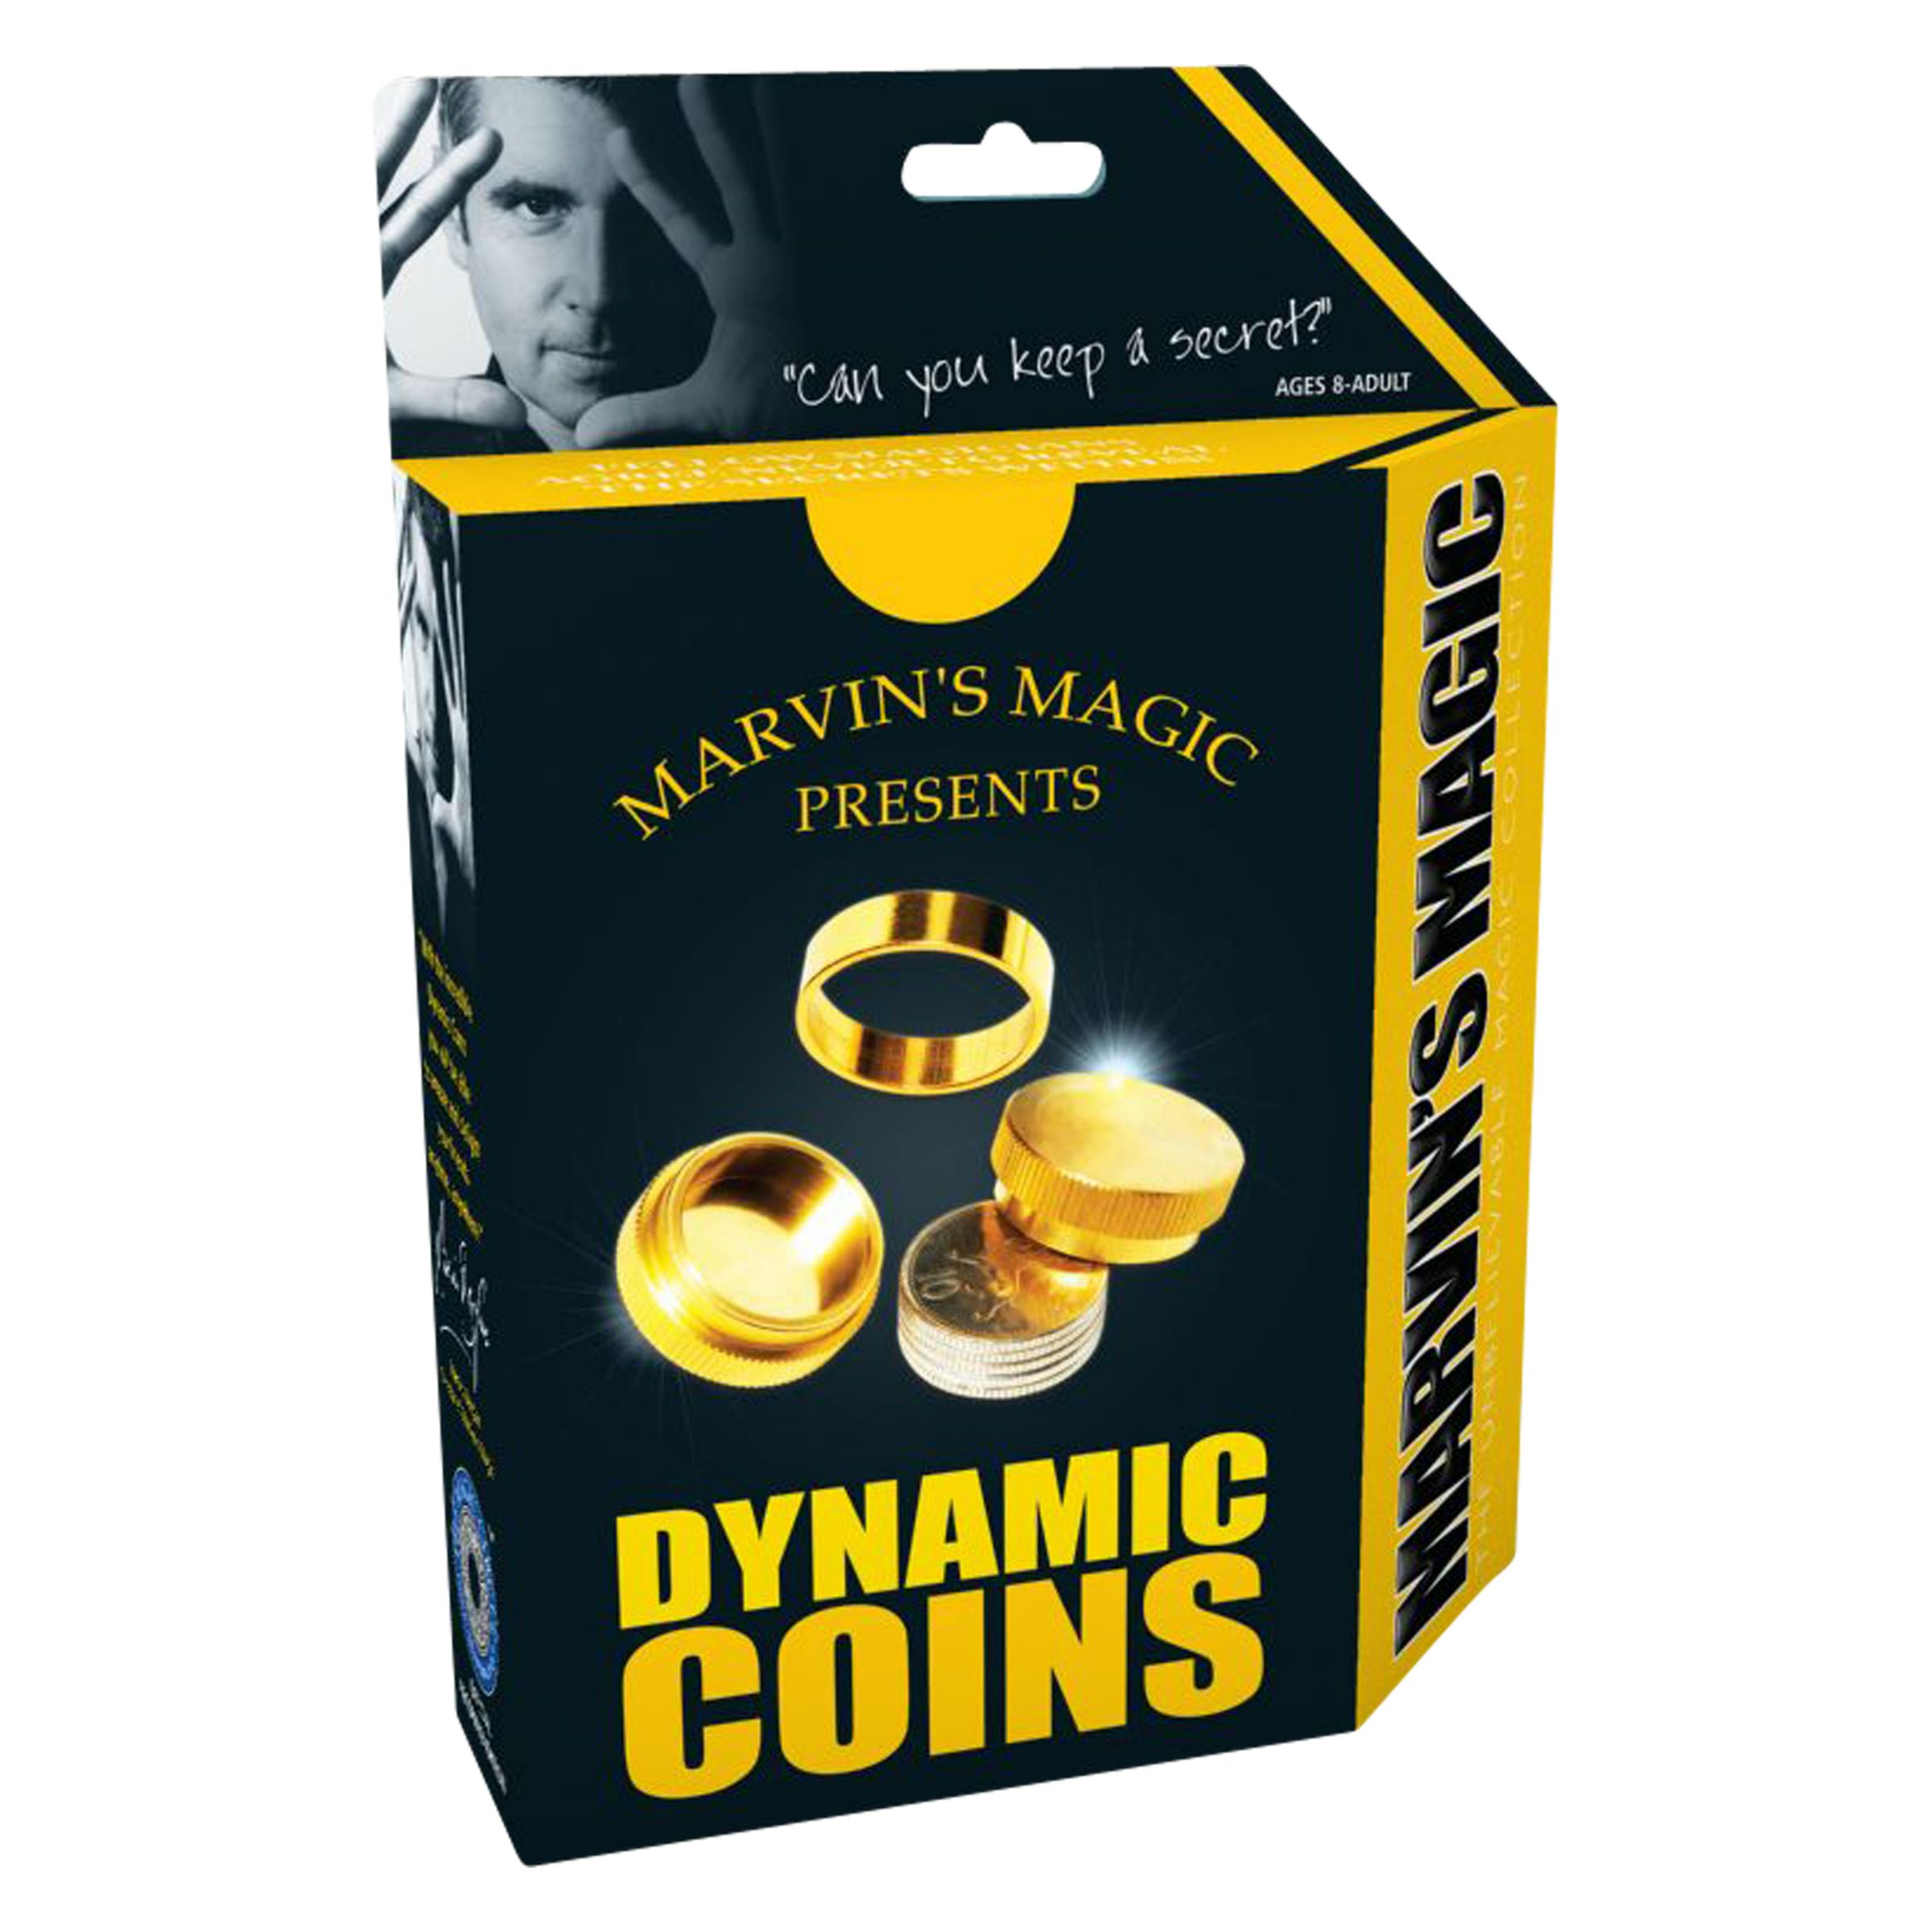 Marvin's Magic Marvin's Magic Dynamic Coins Pack